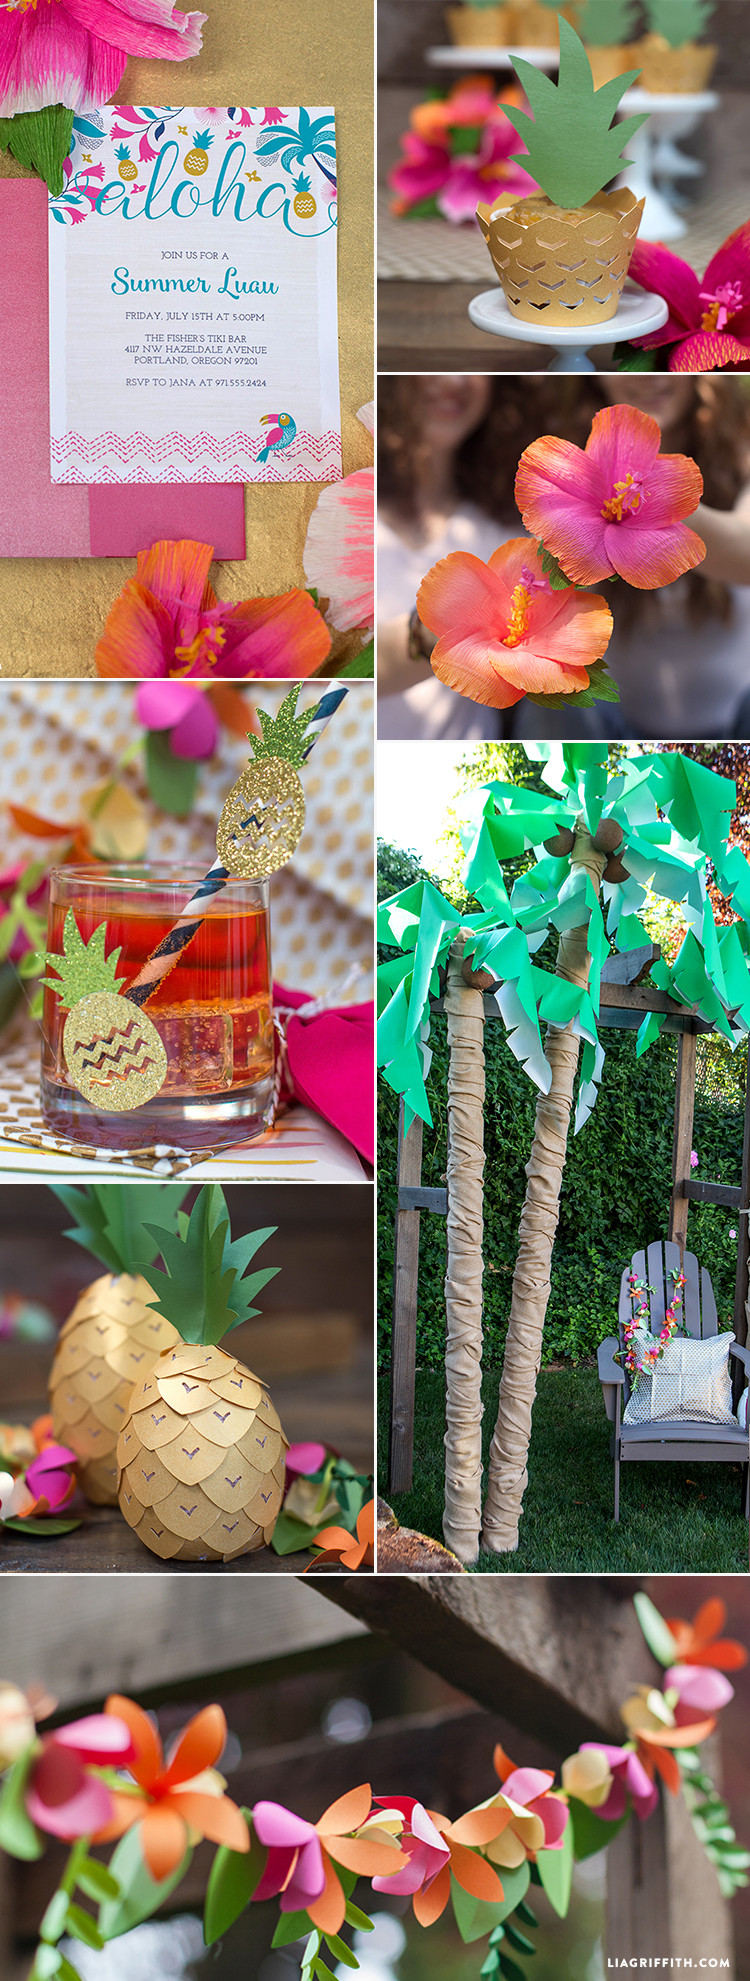 Best ideas about Luau Birthday Party Ideas . Save or Pin Luau Party Ideas Lia Griffith Now.